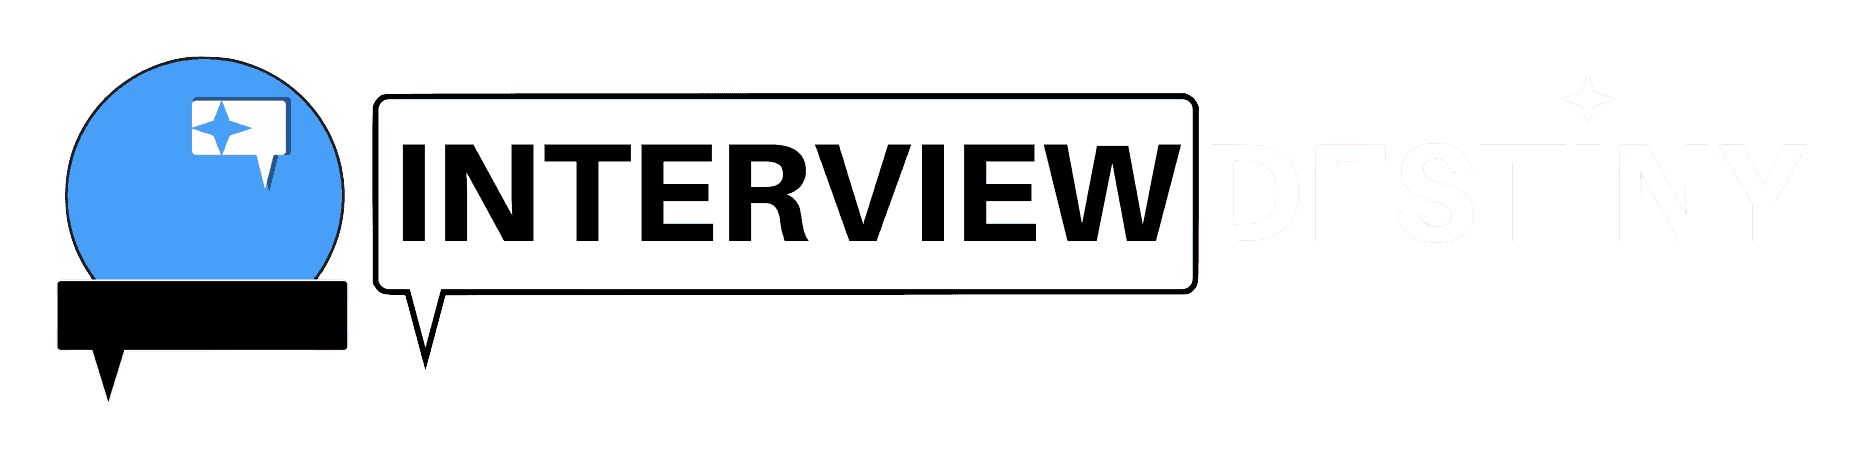 Interview Destiny Logo